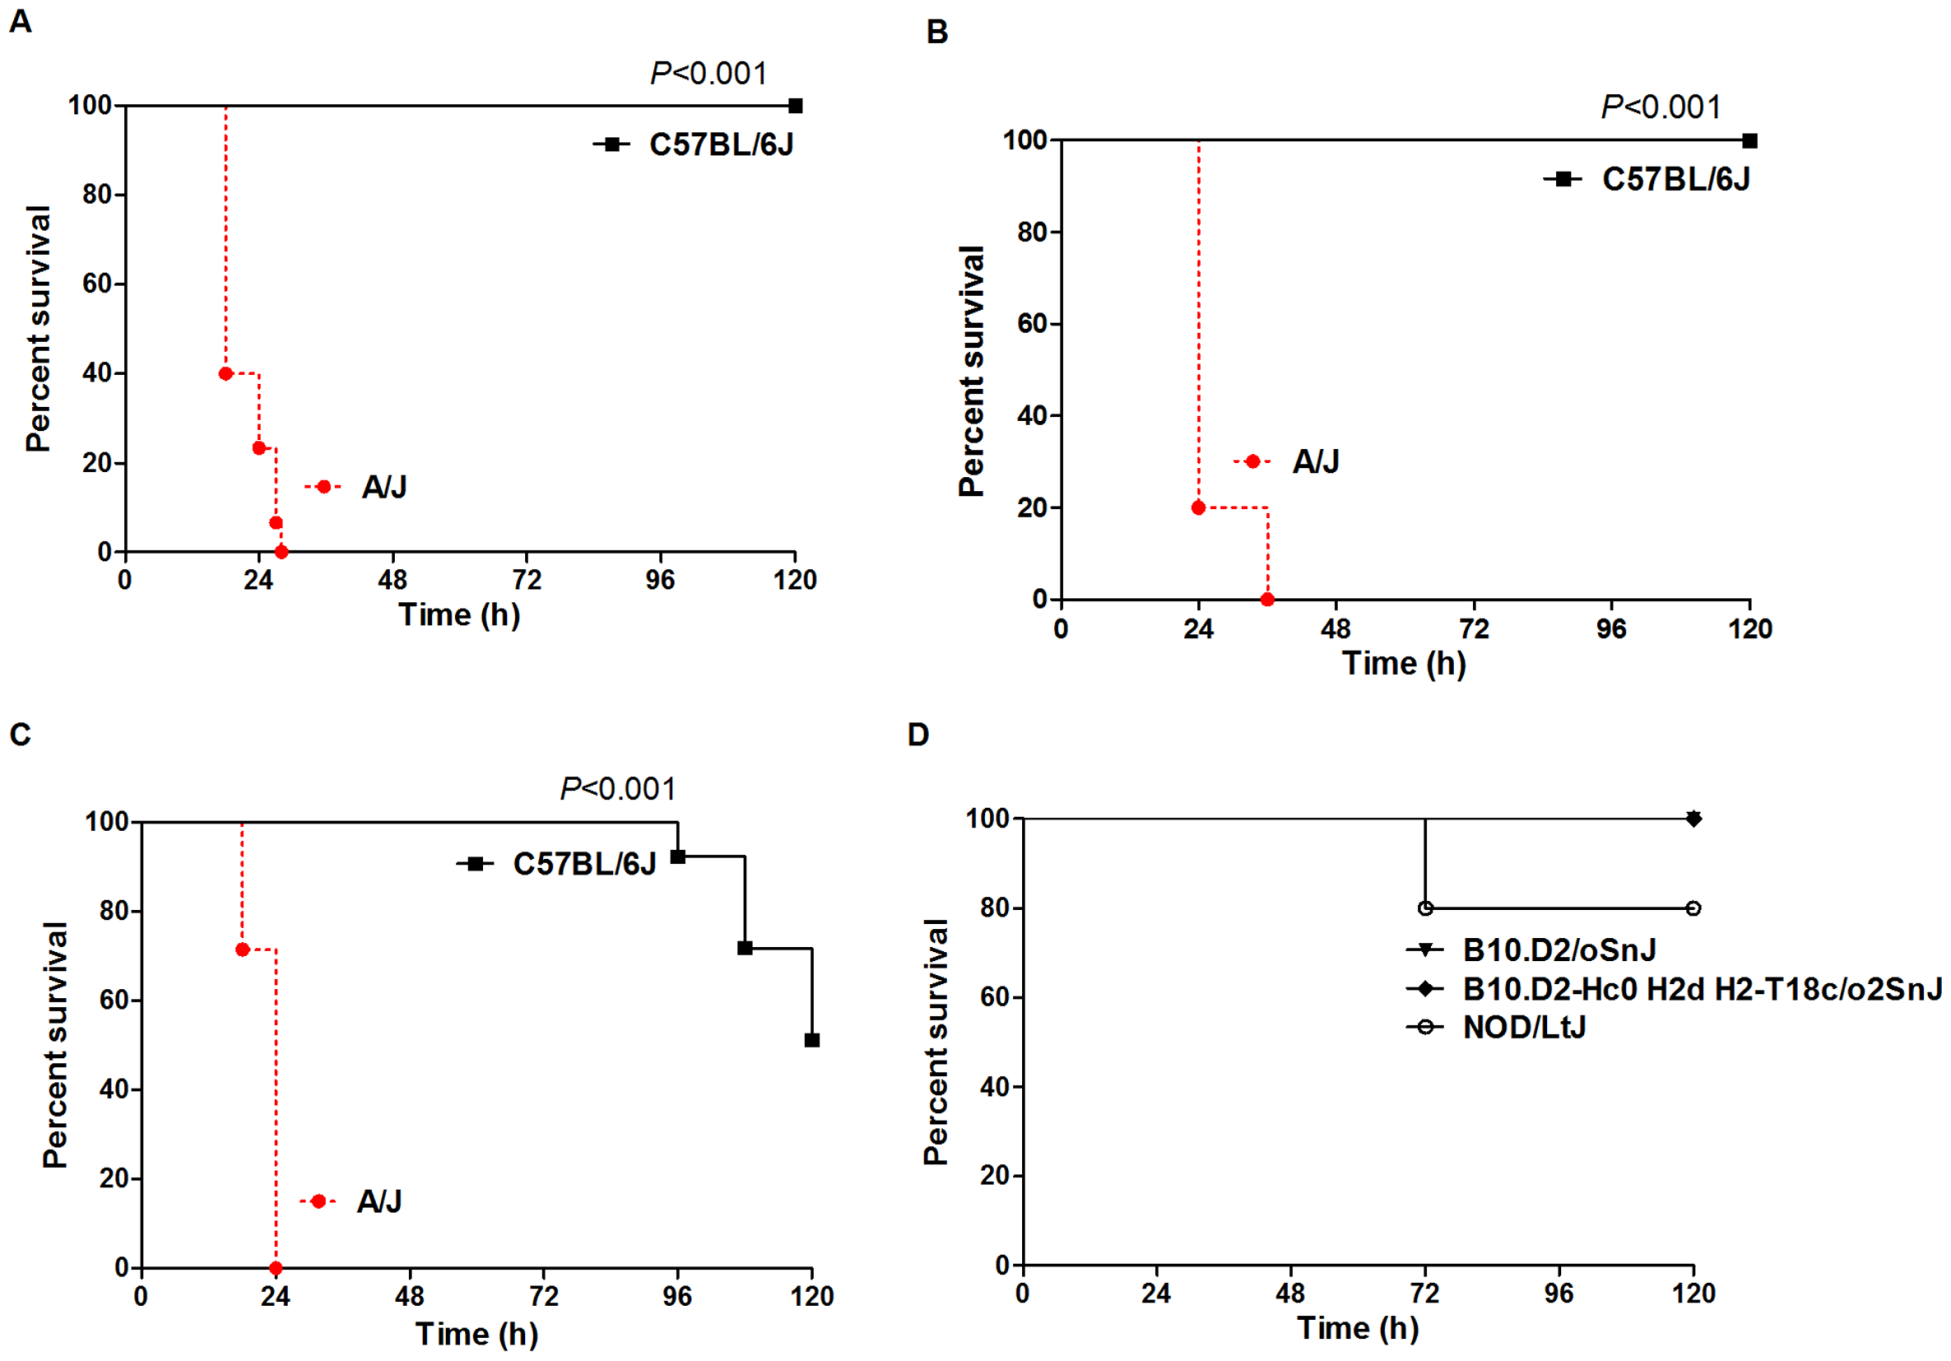 A/J and C57BL/6J mice exhibit different susceptibility to <i>S. aureus</i> that is not primarily due to deficiency in Complement C5.